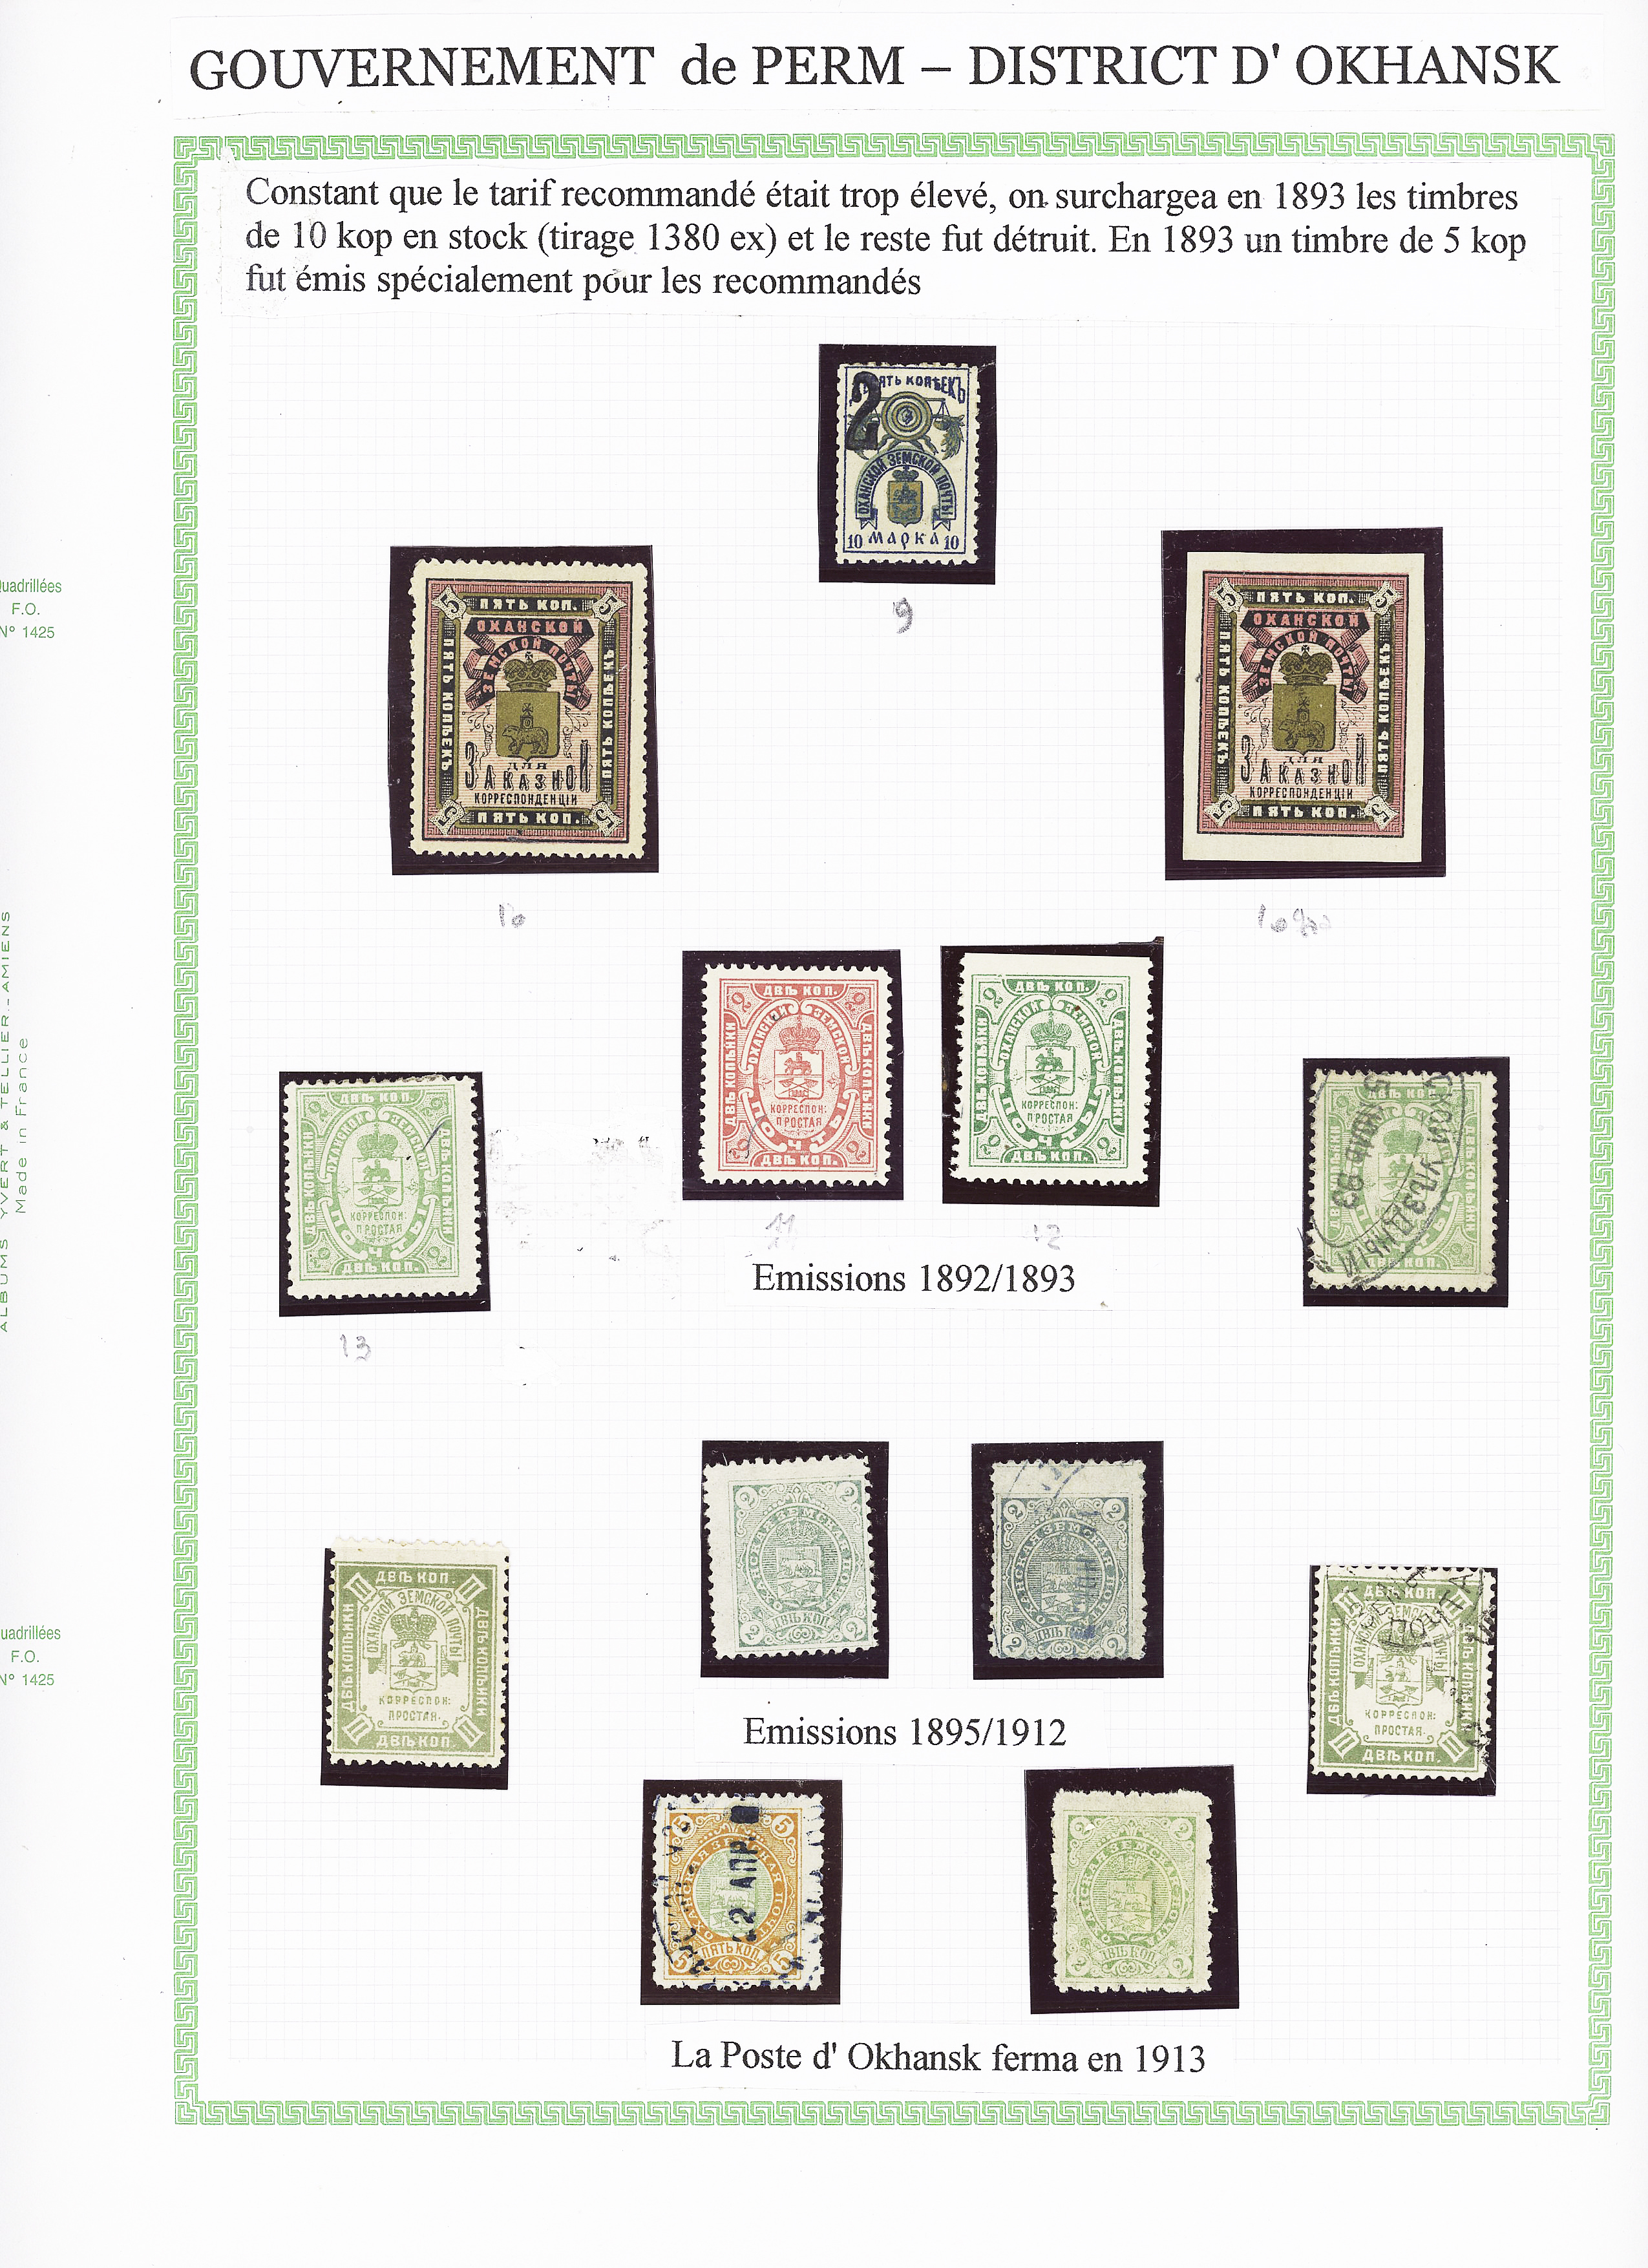 Lot 504 - Eastern Europe » RUSSIA - ZEMSTVOS » Okhansk (Perm Government)  -  Le Timbre Classique SA SALE ON OFFERS N ° 37 PARIS